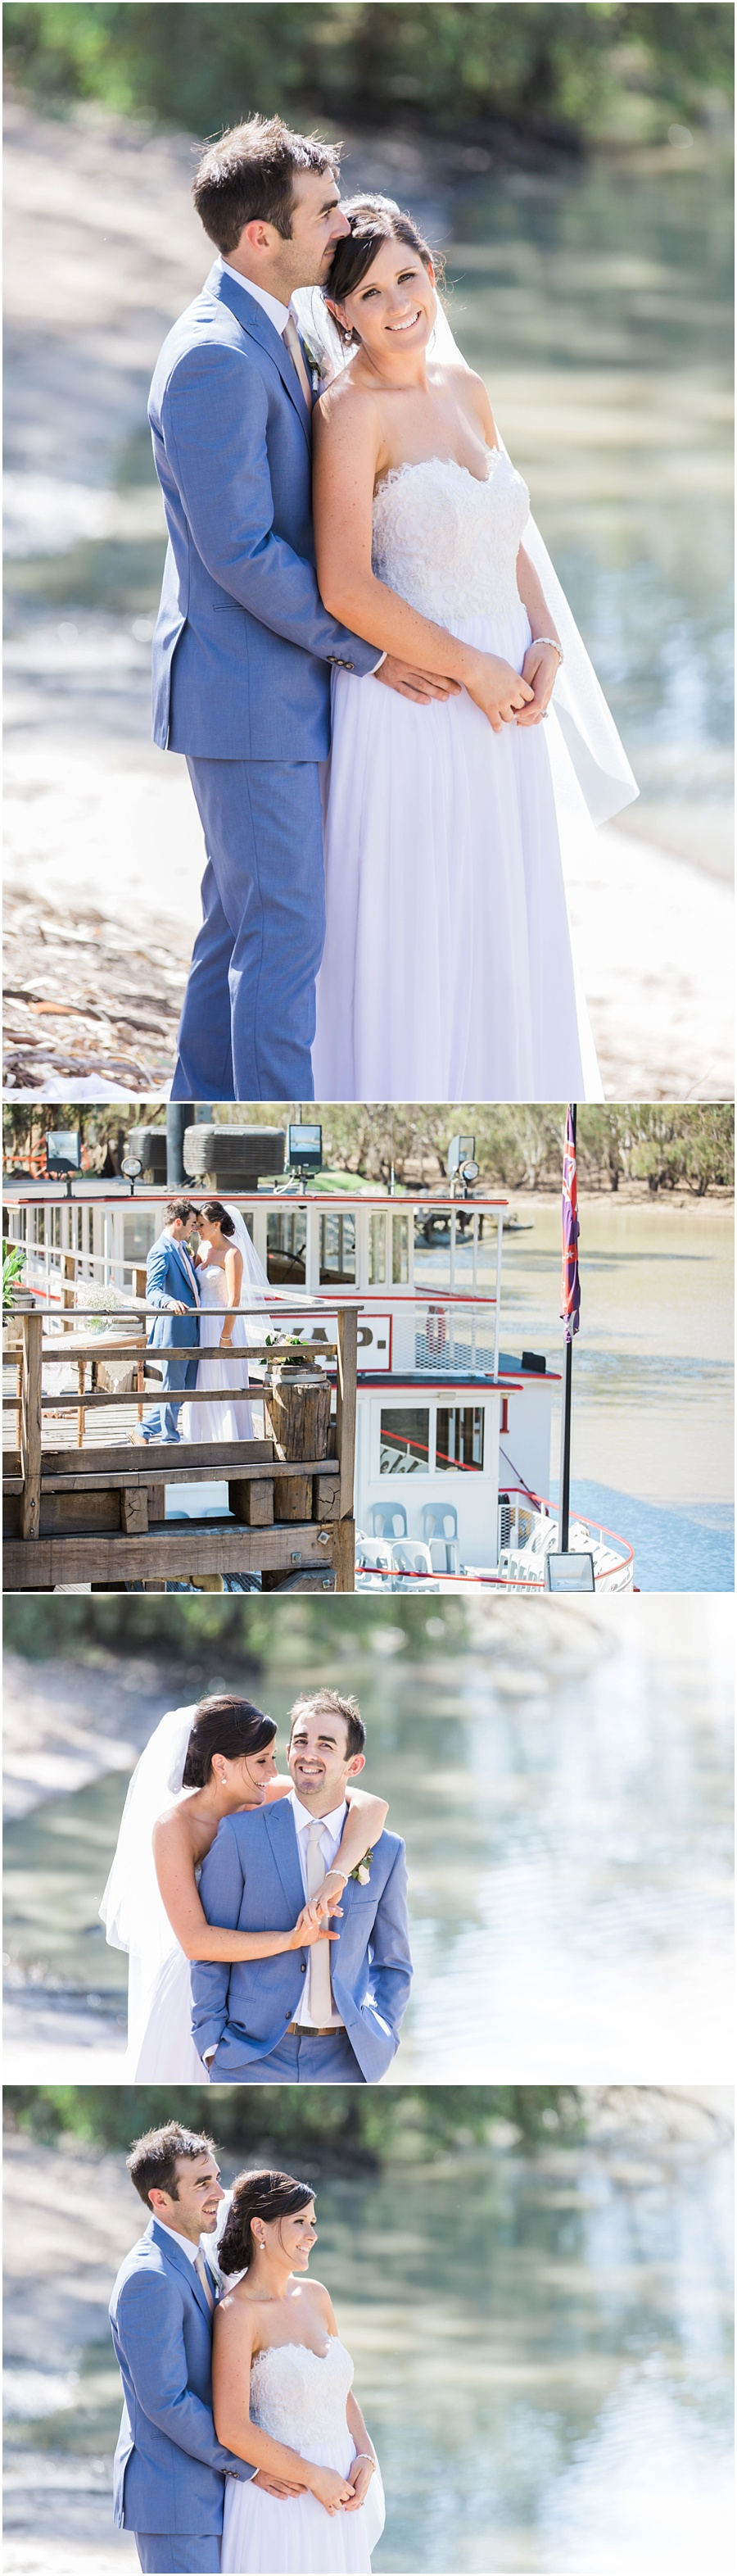 Daylesford Wedding Photographer_0059